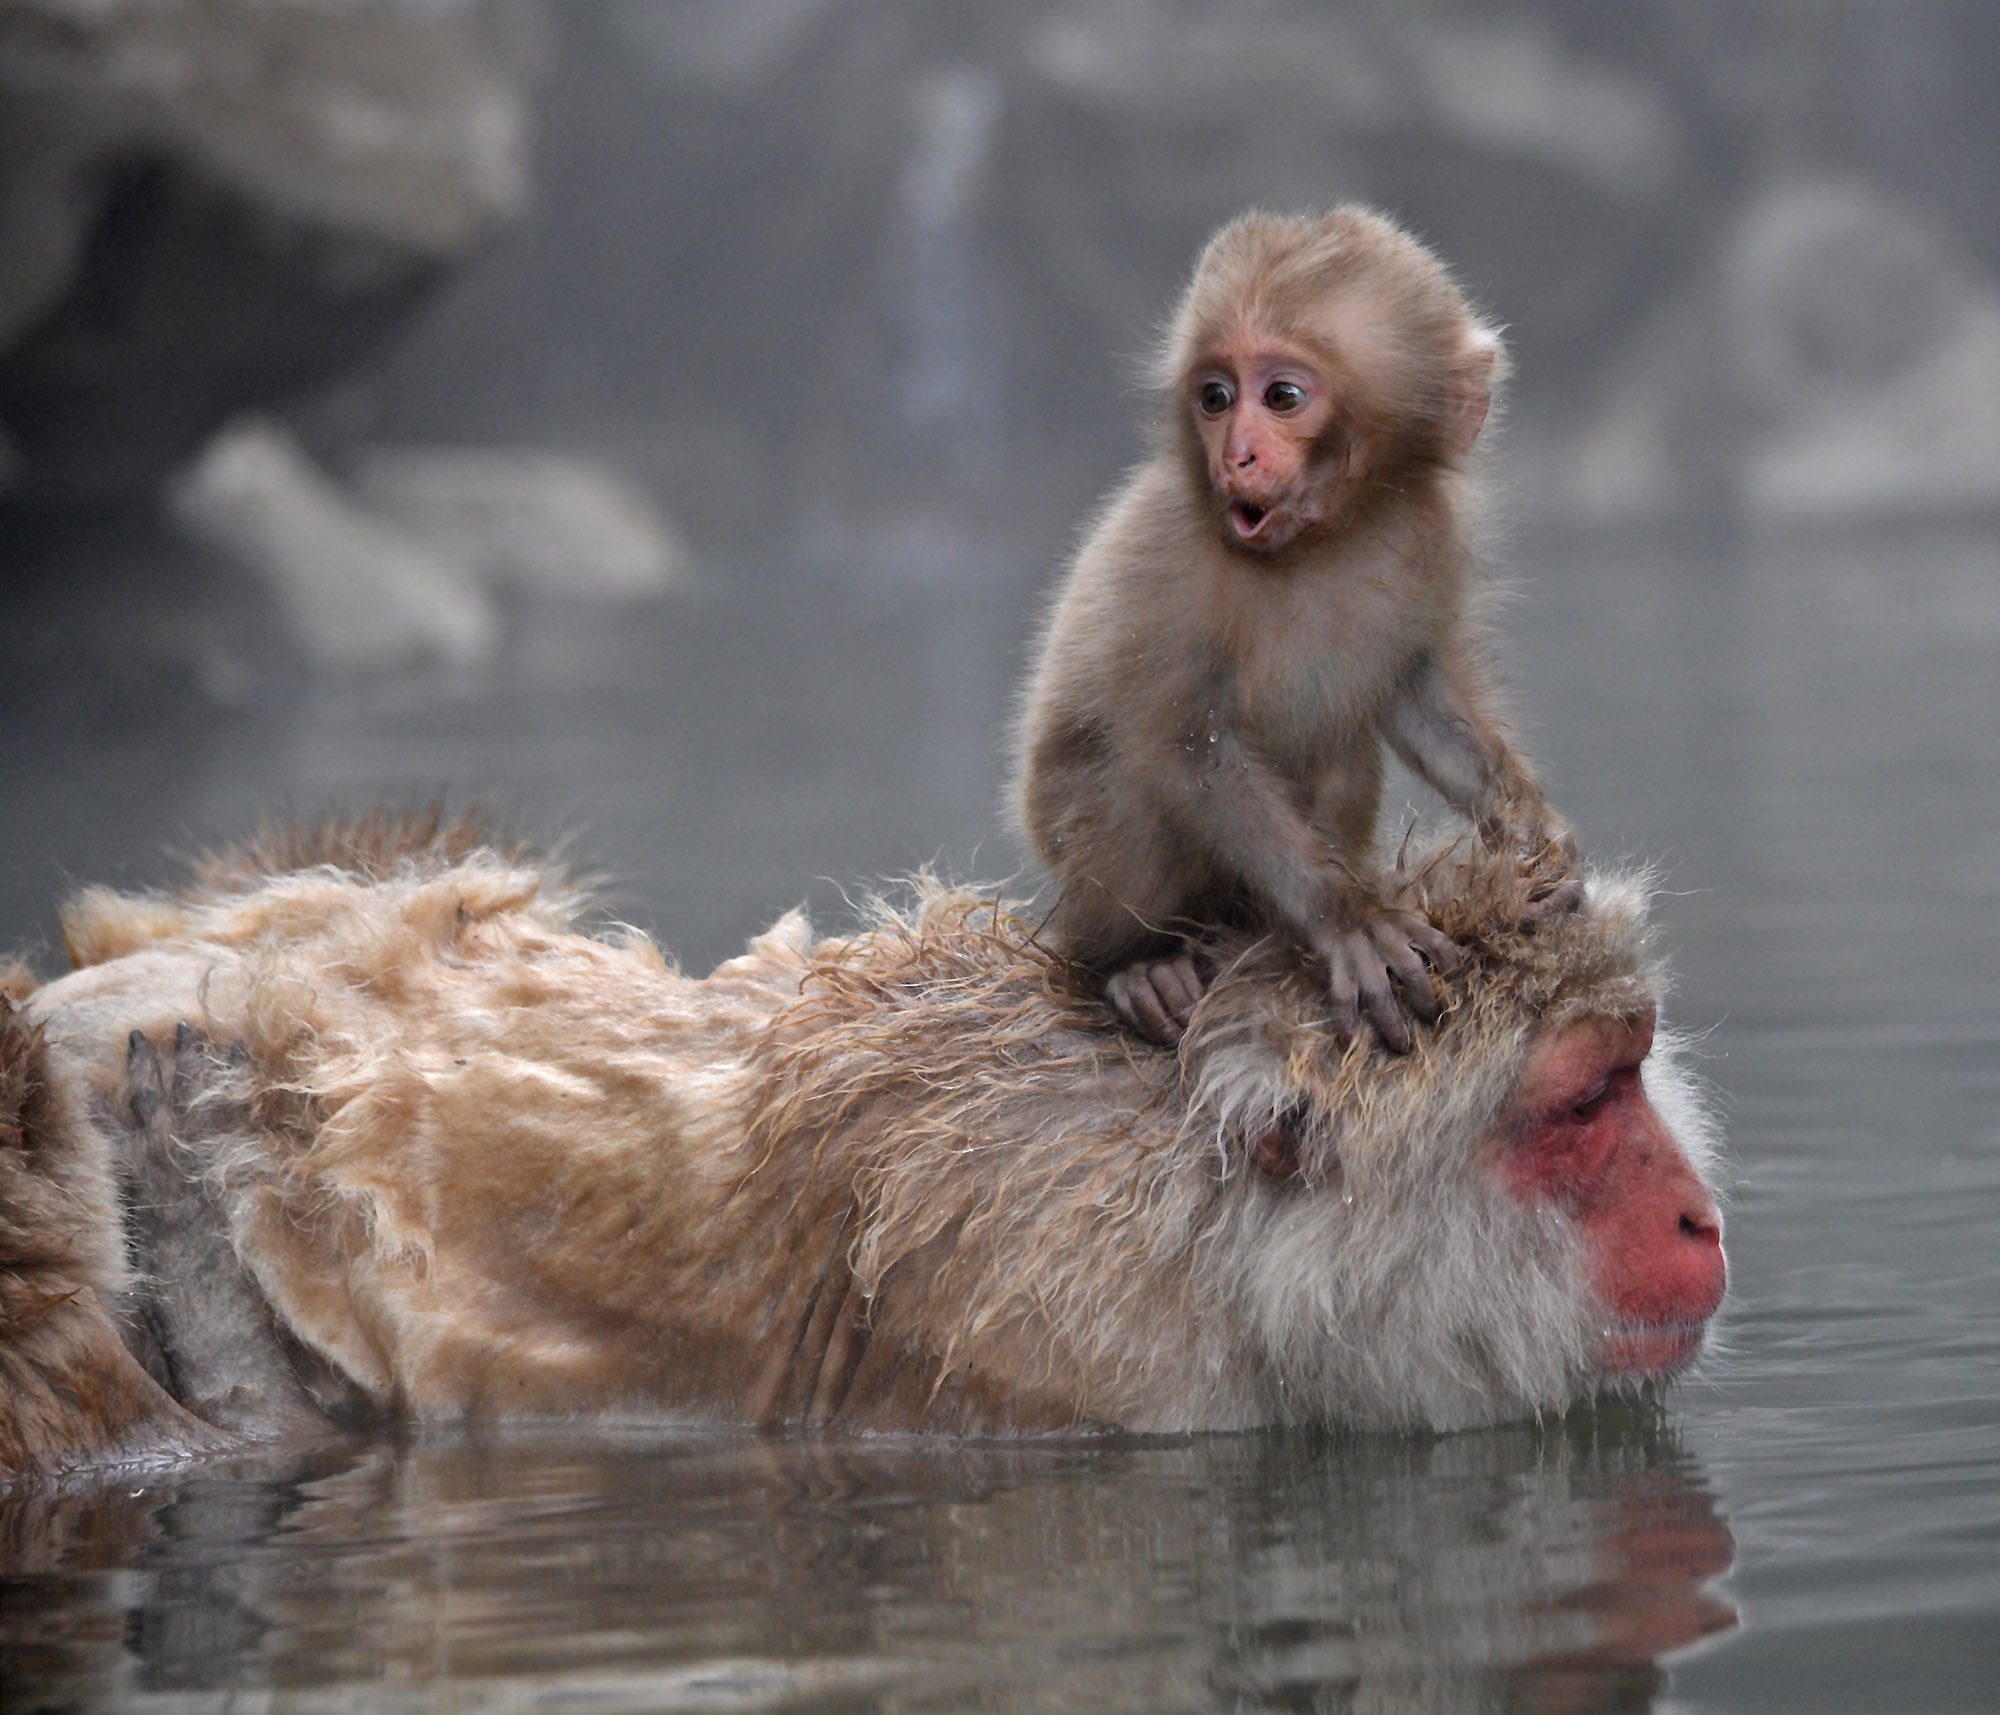 Baby snow monkey and mother bathing